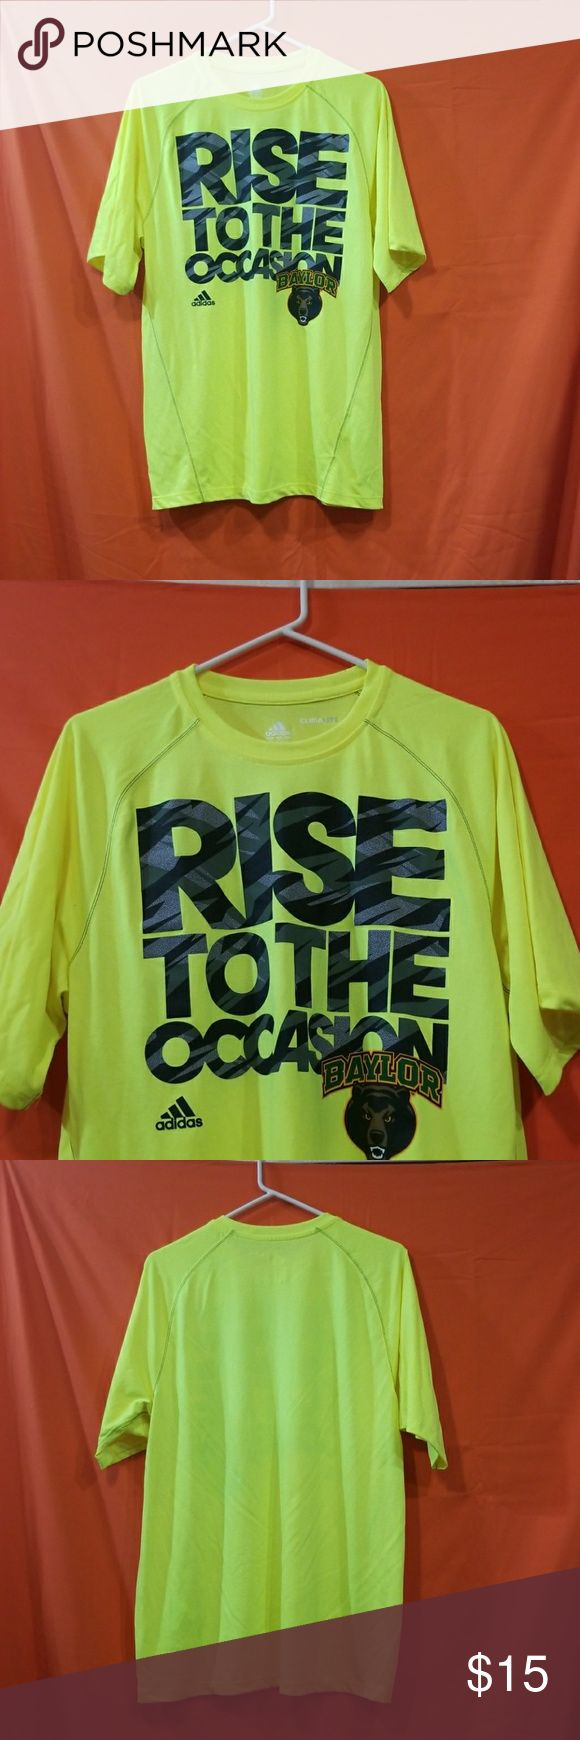 """Size Small Lime green Baylor tee Lime green, black and gray Size small, excellent used condition only worn a few times. """"Rise to the Occasion"""" Baylor University. Short sleeve. Climatelite #adidas #baylor #bayloruniversity #college #limegreen adidas Shirts Tees - Short Sleeve"""